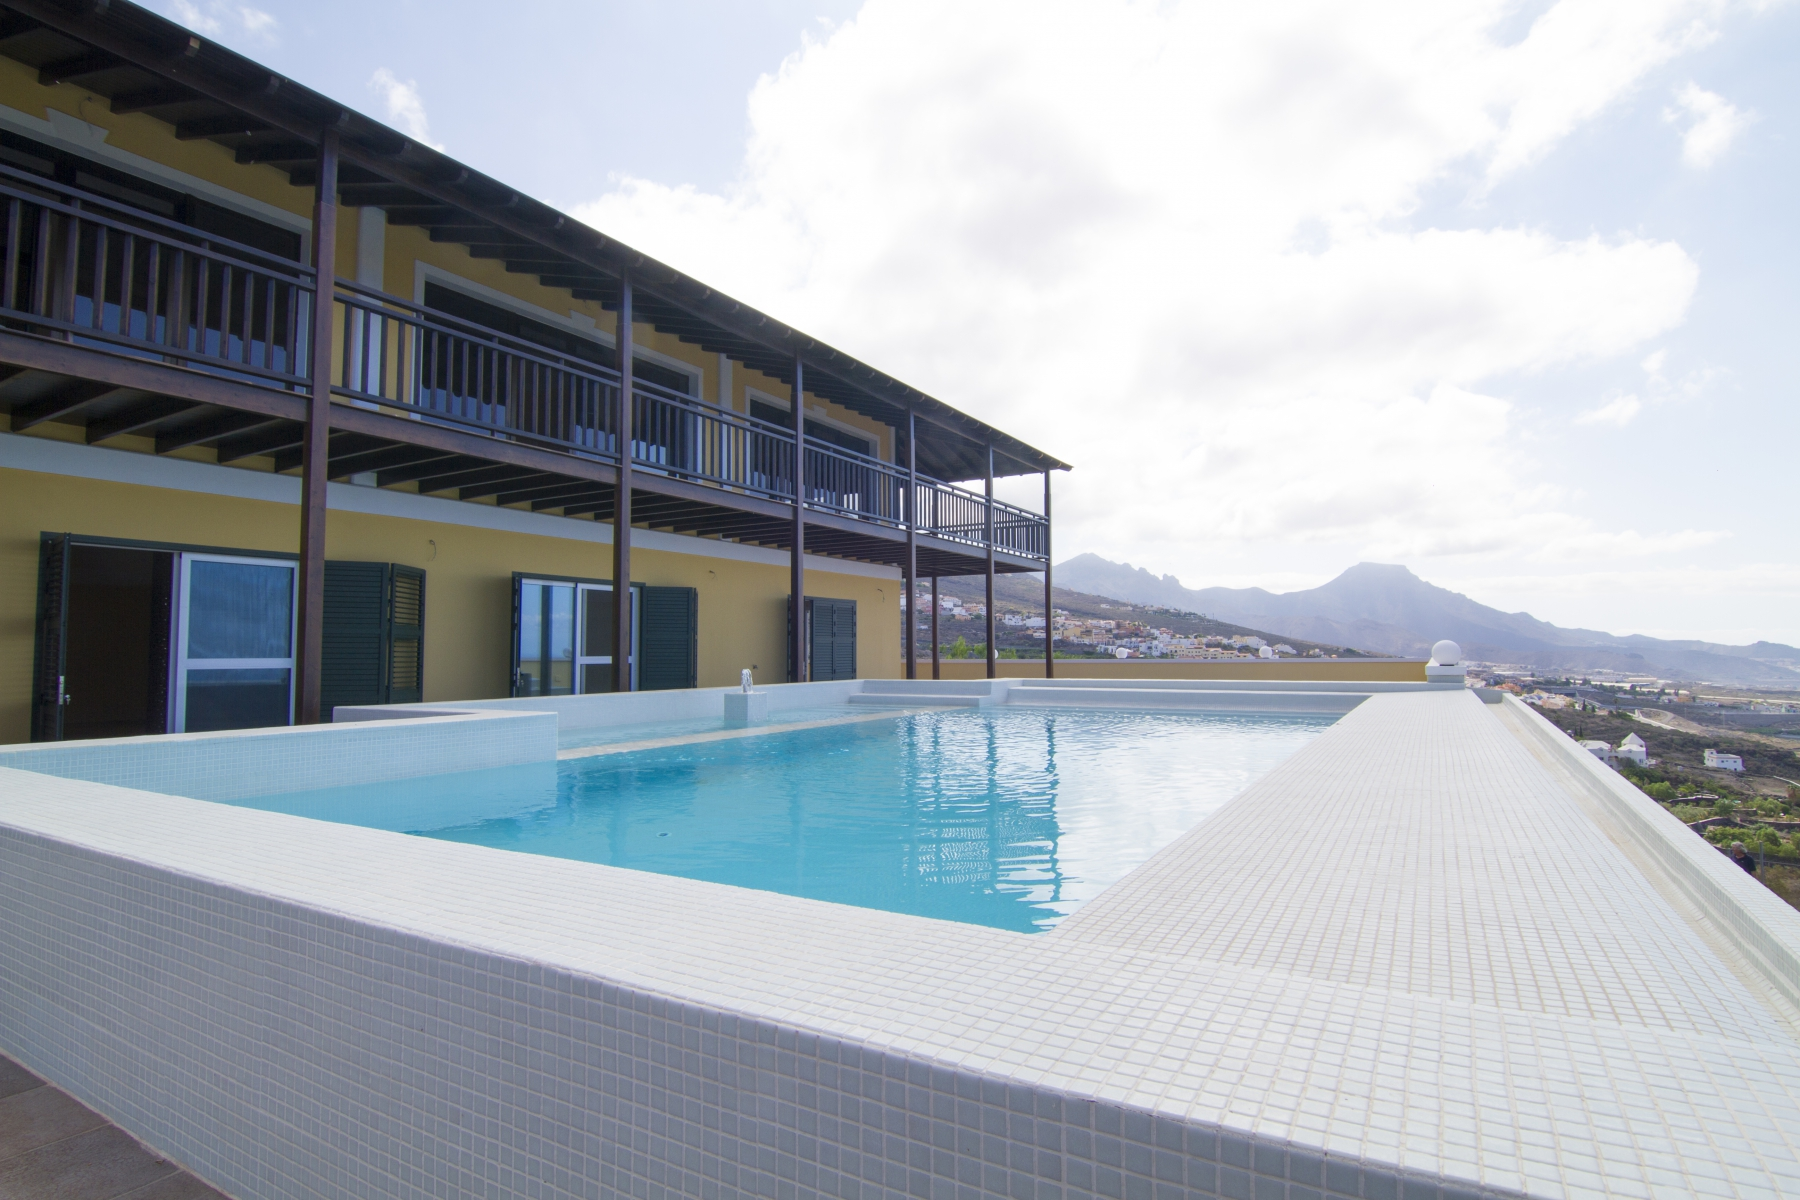 Properties for Sale in Tenerife, Canary Islands, Spain | SylkWayStar Real Estate. 7 Bed Villa + 7000 m<sup>2</sup> - Iboybo - Adeje. Image-390